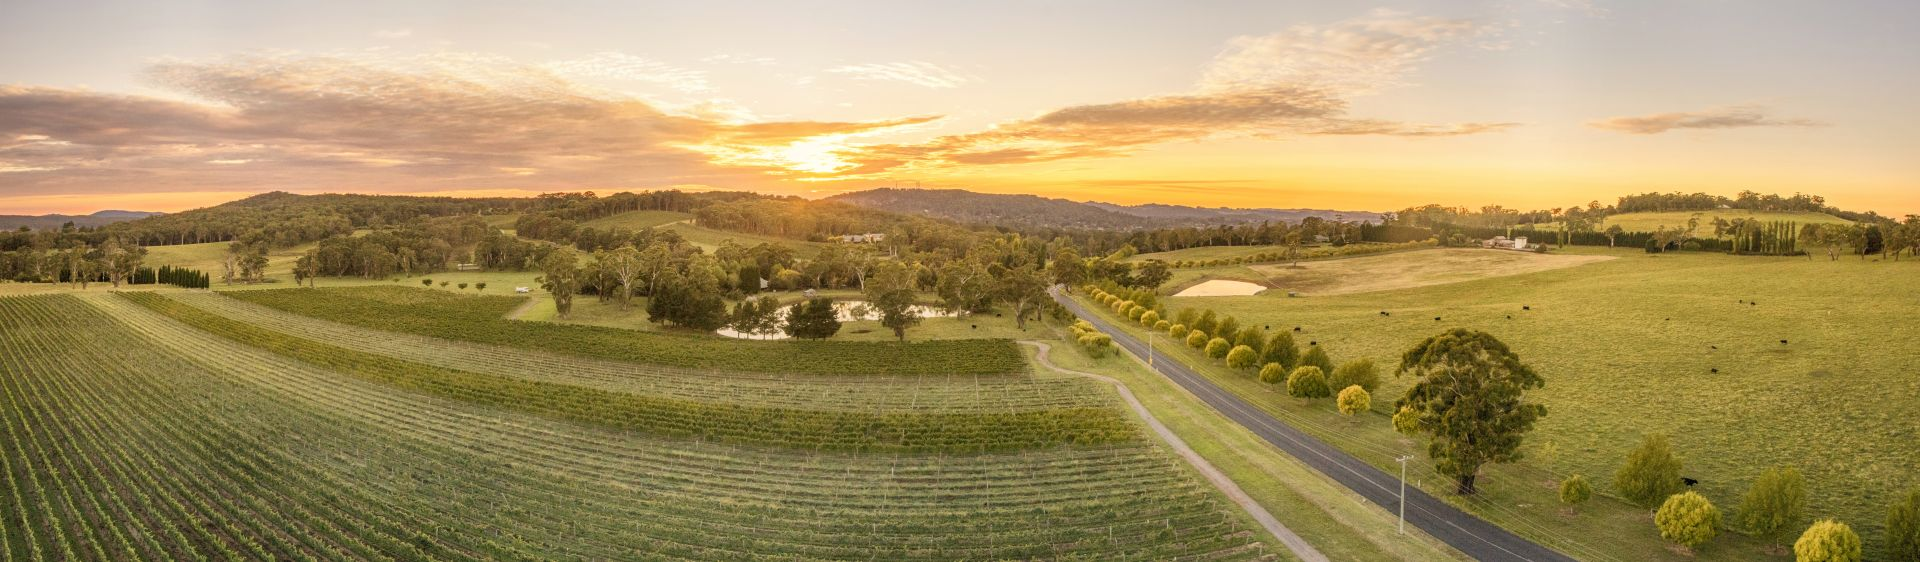 Sunrise over the Centennial Vineyards, near Mittagong, Southern Highlands